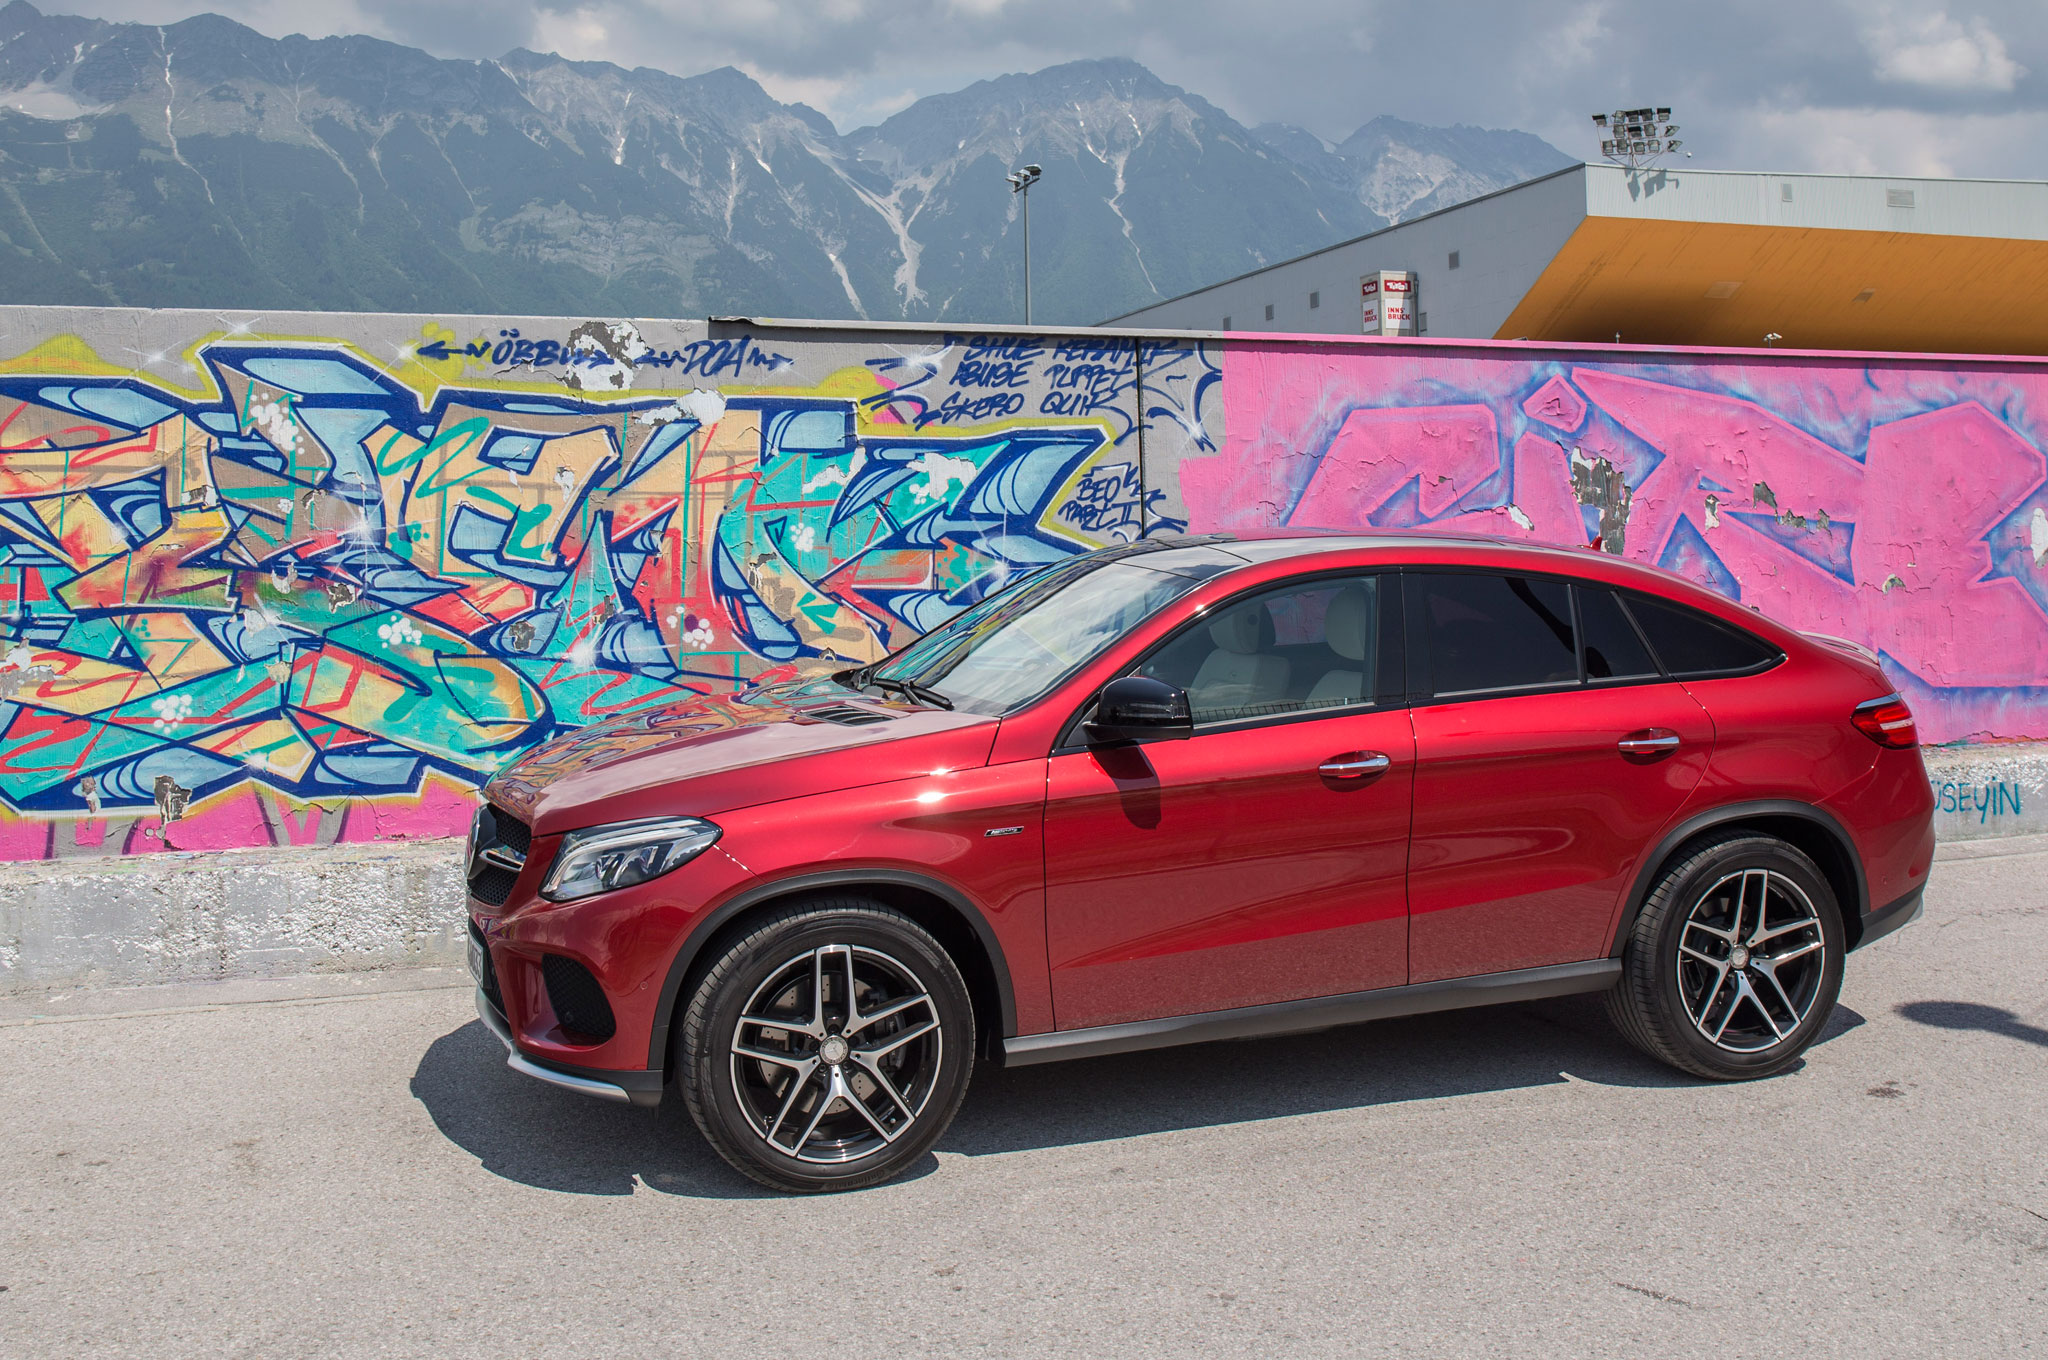 http://st.automobilemag.com/uploads/sites/11/2015/06/2016-Mercedes-Benz-GLE450-AMG-4Matic-Coupe-side-profile-03.jpg